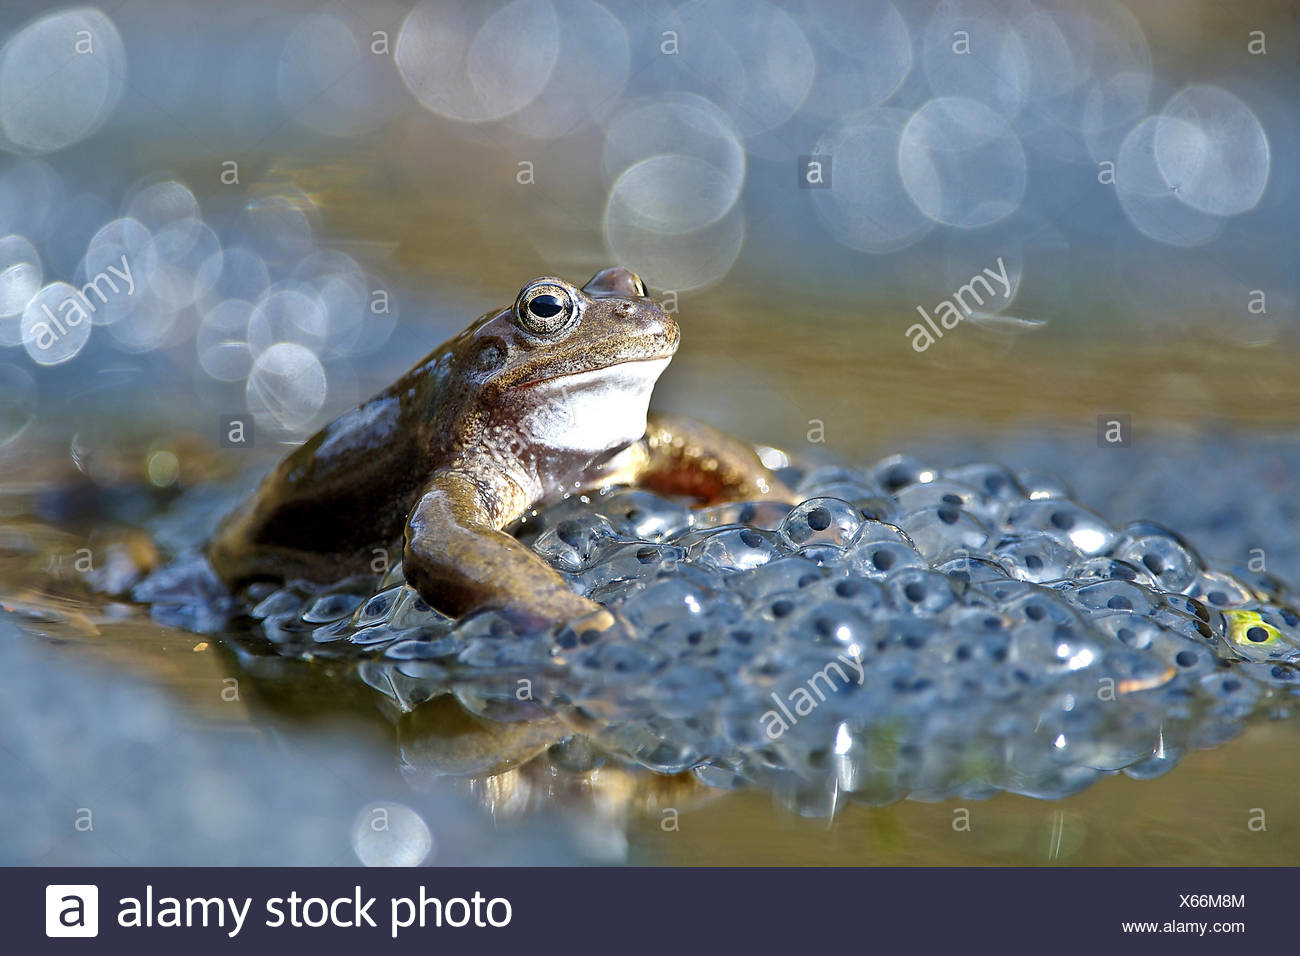 common frog, grass frog (Rana temporaria), frog in spawn clump, Germany - Stock Image